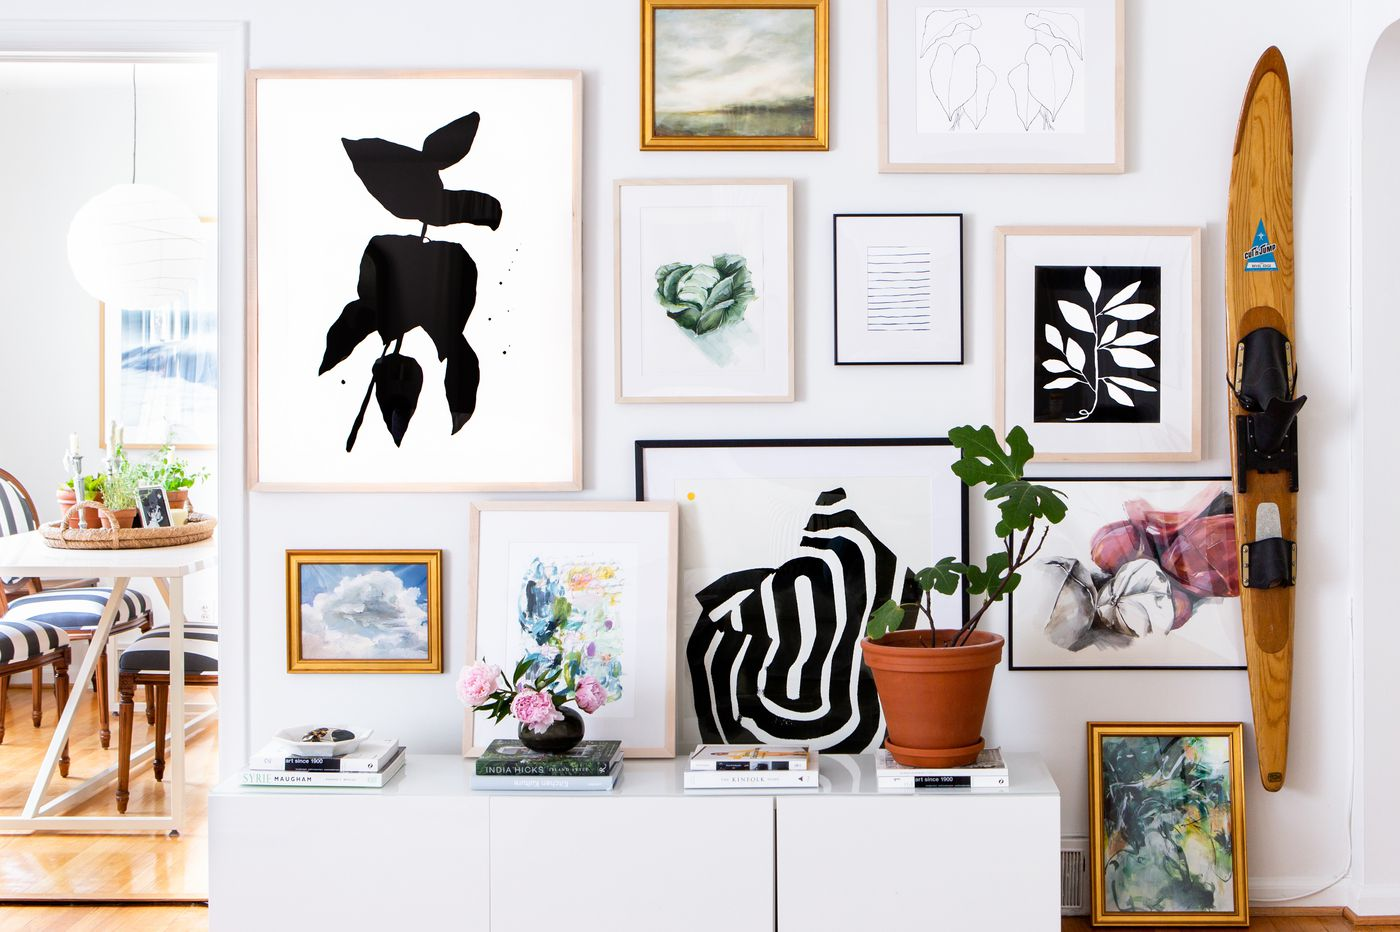 How To Nail A Gallery Wall In Your Own Home